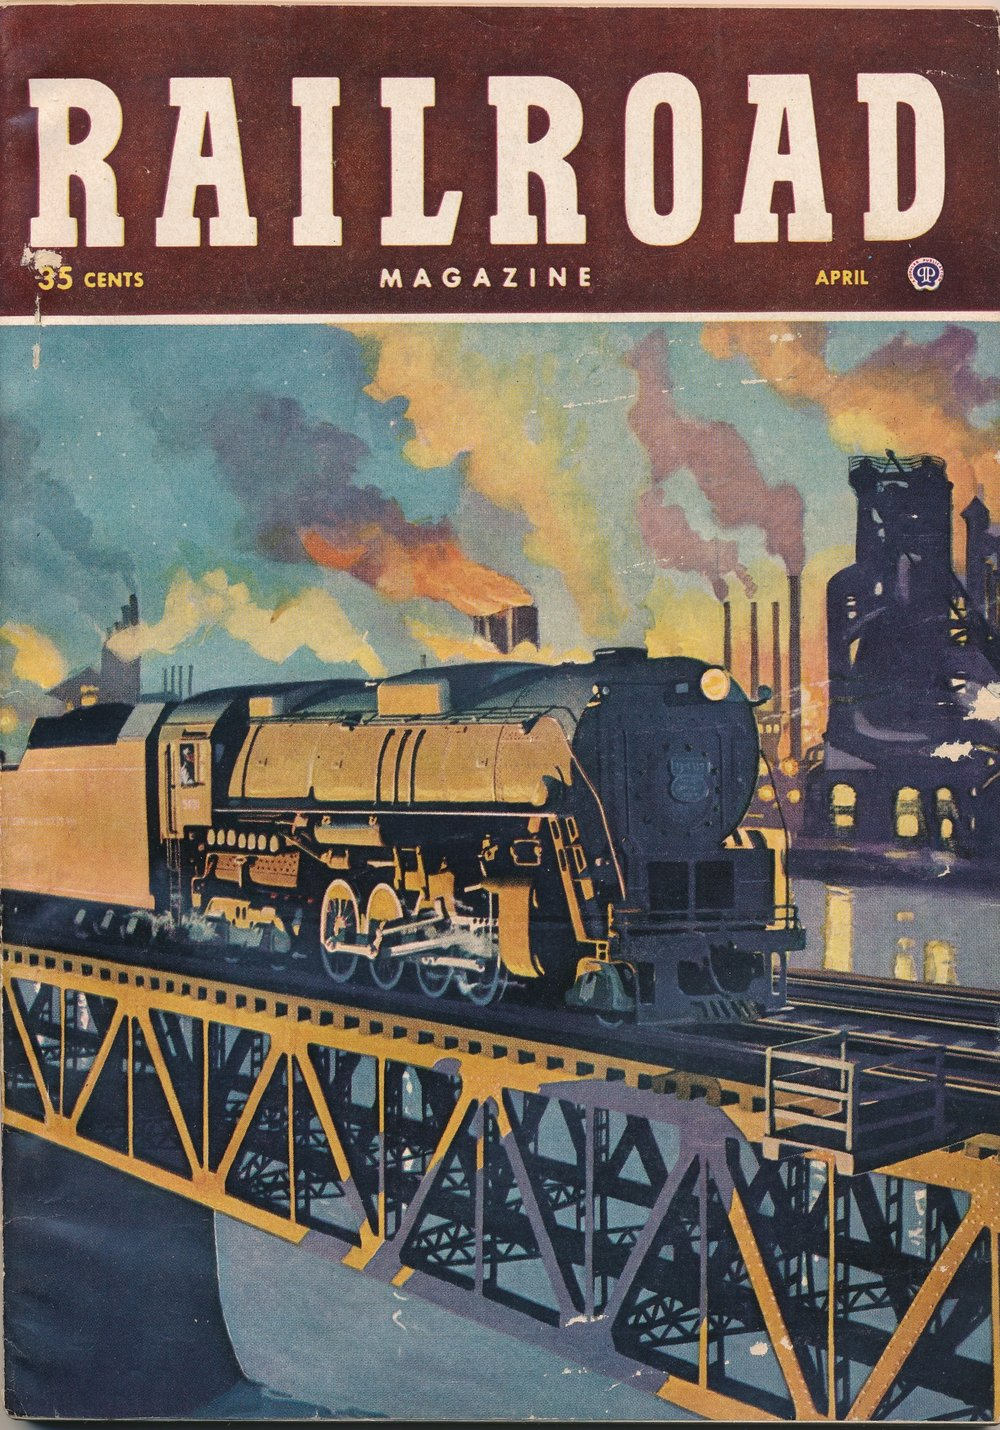 'Partners in Steel' by Frederick Blakeslee - Railroad Magazine (Apr 1950, vol51, no3).jpg